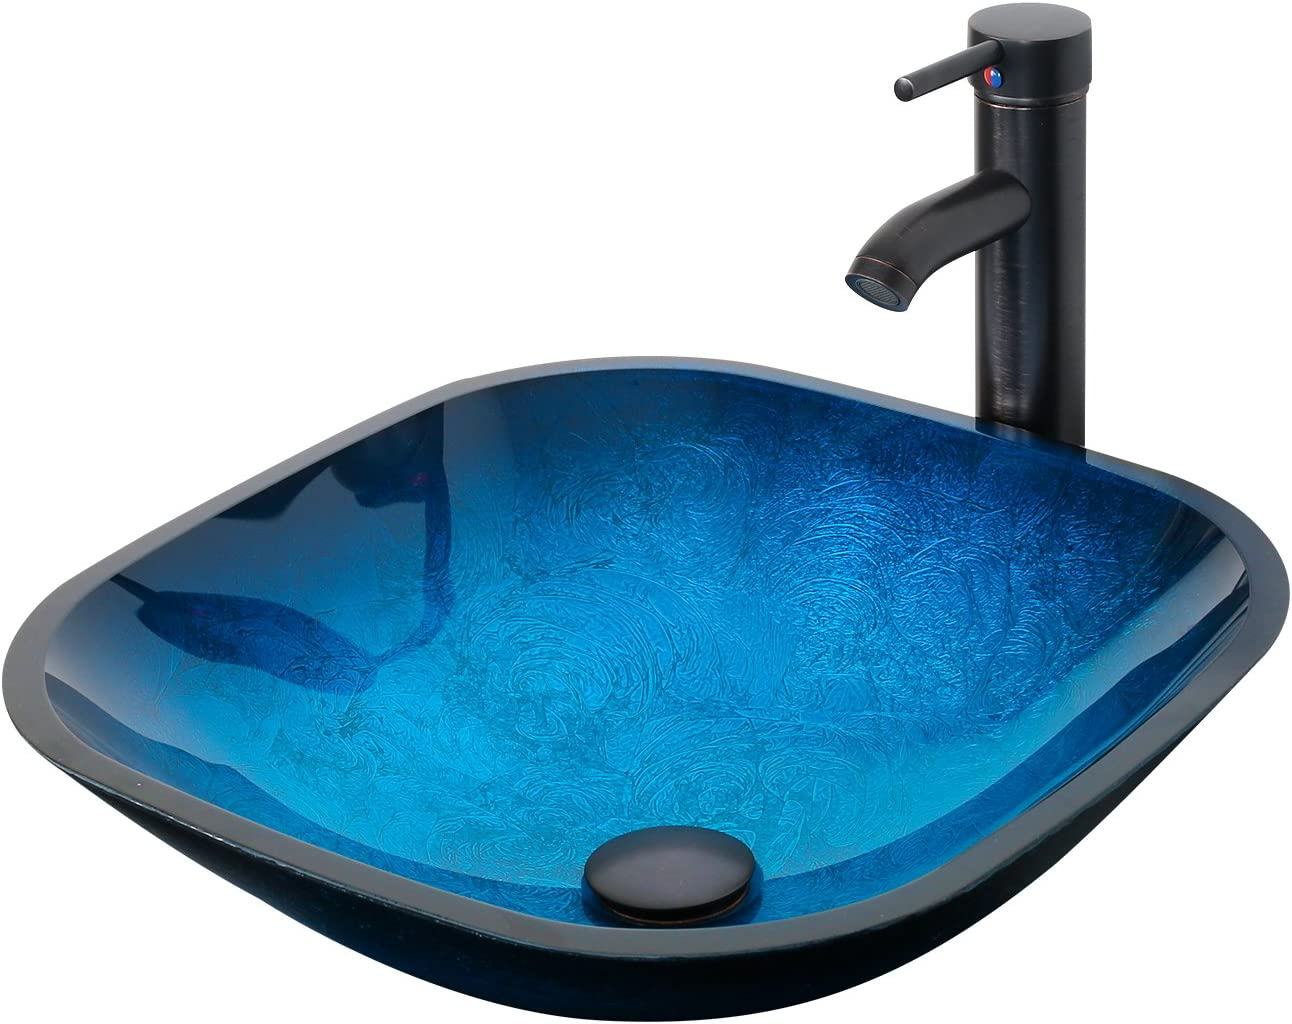 ELECWISH Bathroom Round Vessel Sink Ocean Blue Tempered Glass Above Top Hand Painting Artistic Sink with Oil Rubbed Bronze Faucet /& Pop Up Drain